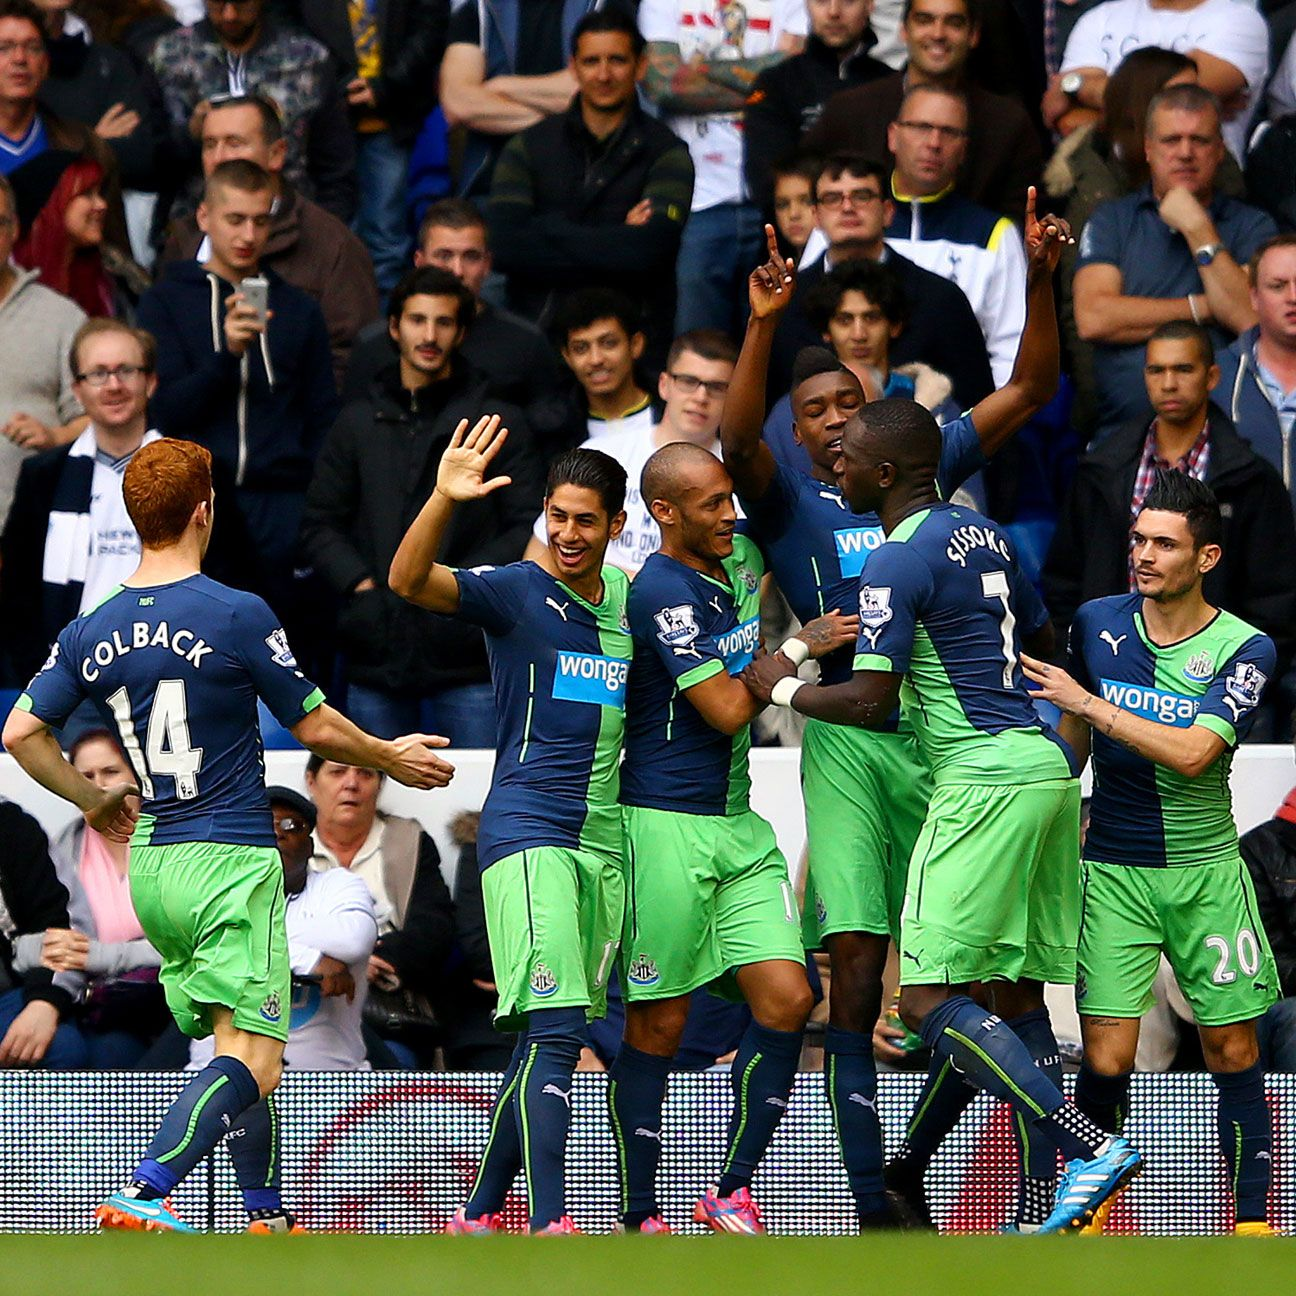 Newcastle stormed back to down Spurs thanks in part to Sammy Ameobi's lightning-quick strike to open the second half.